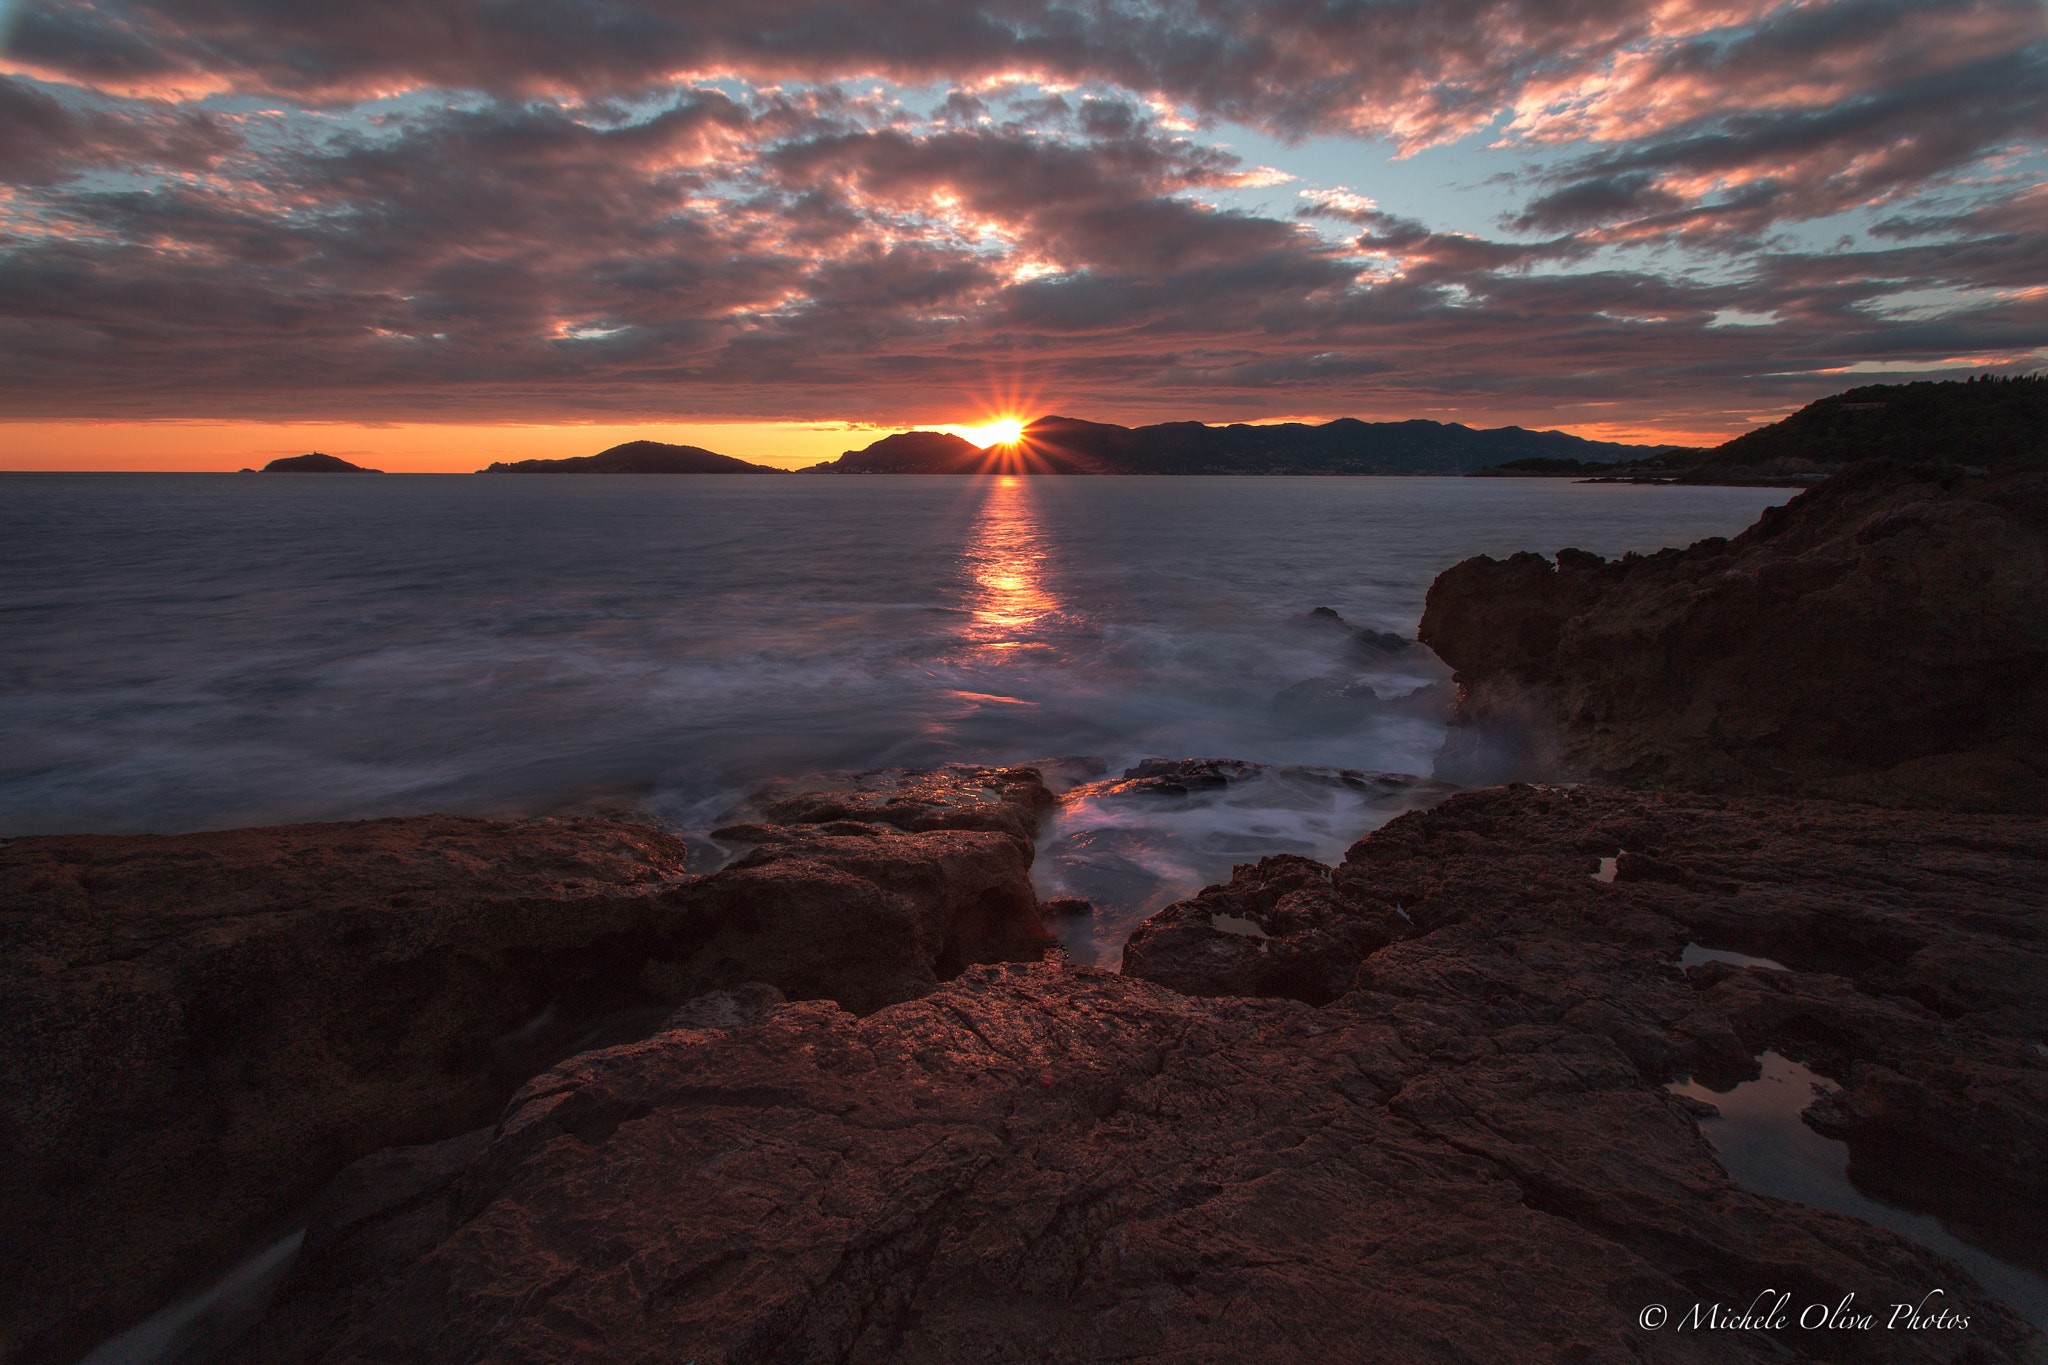 Photograph Sunset by Michele Oliva on 500px